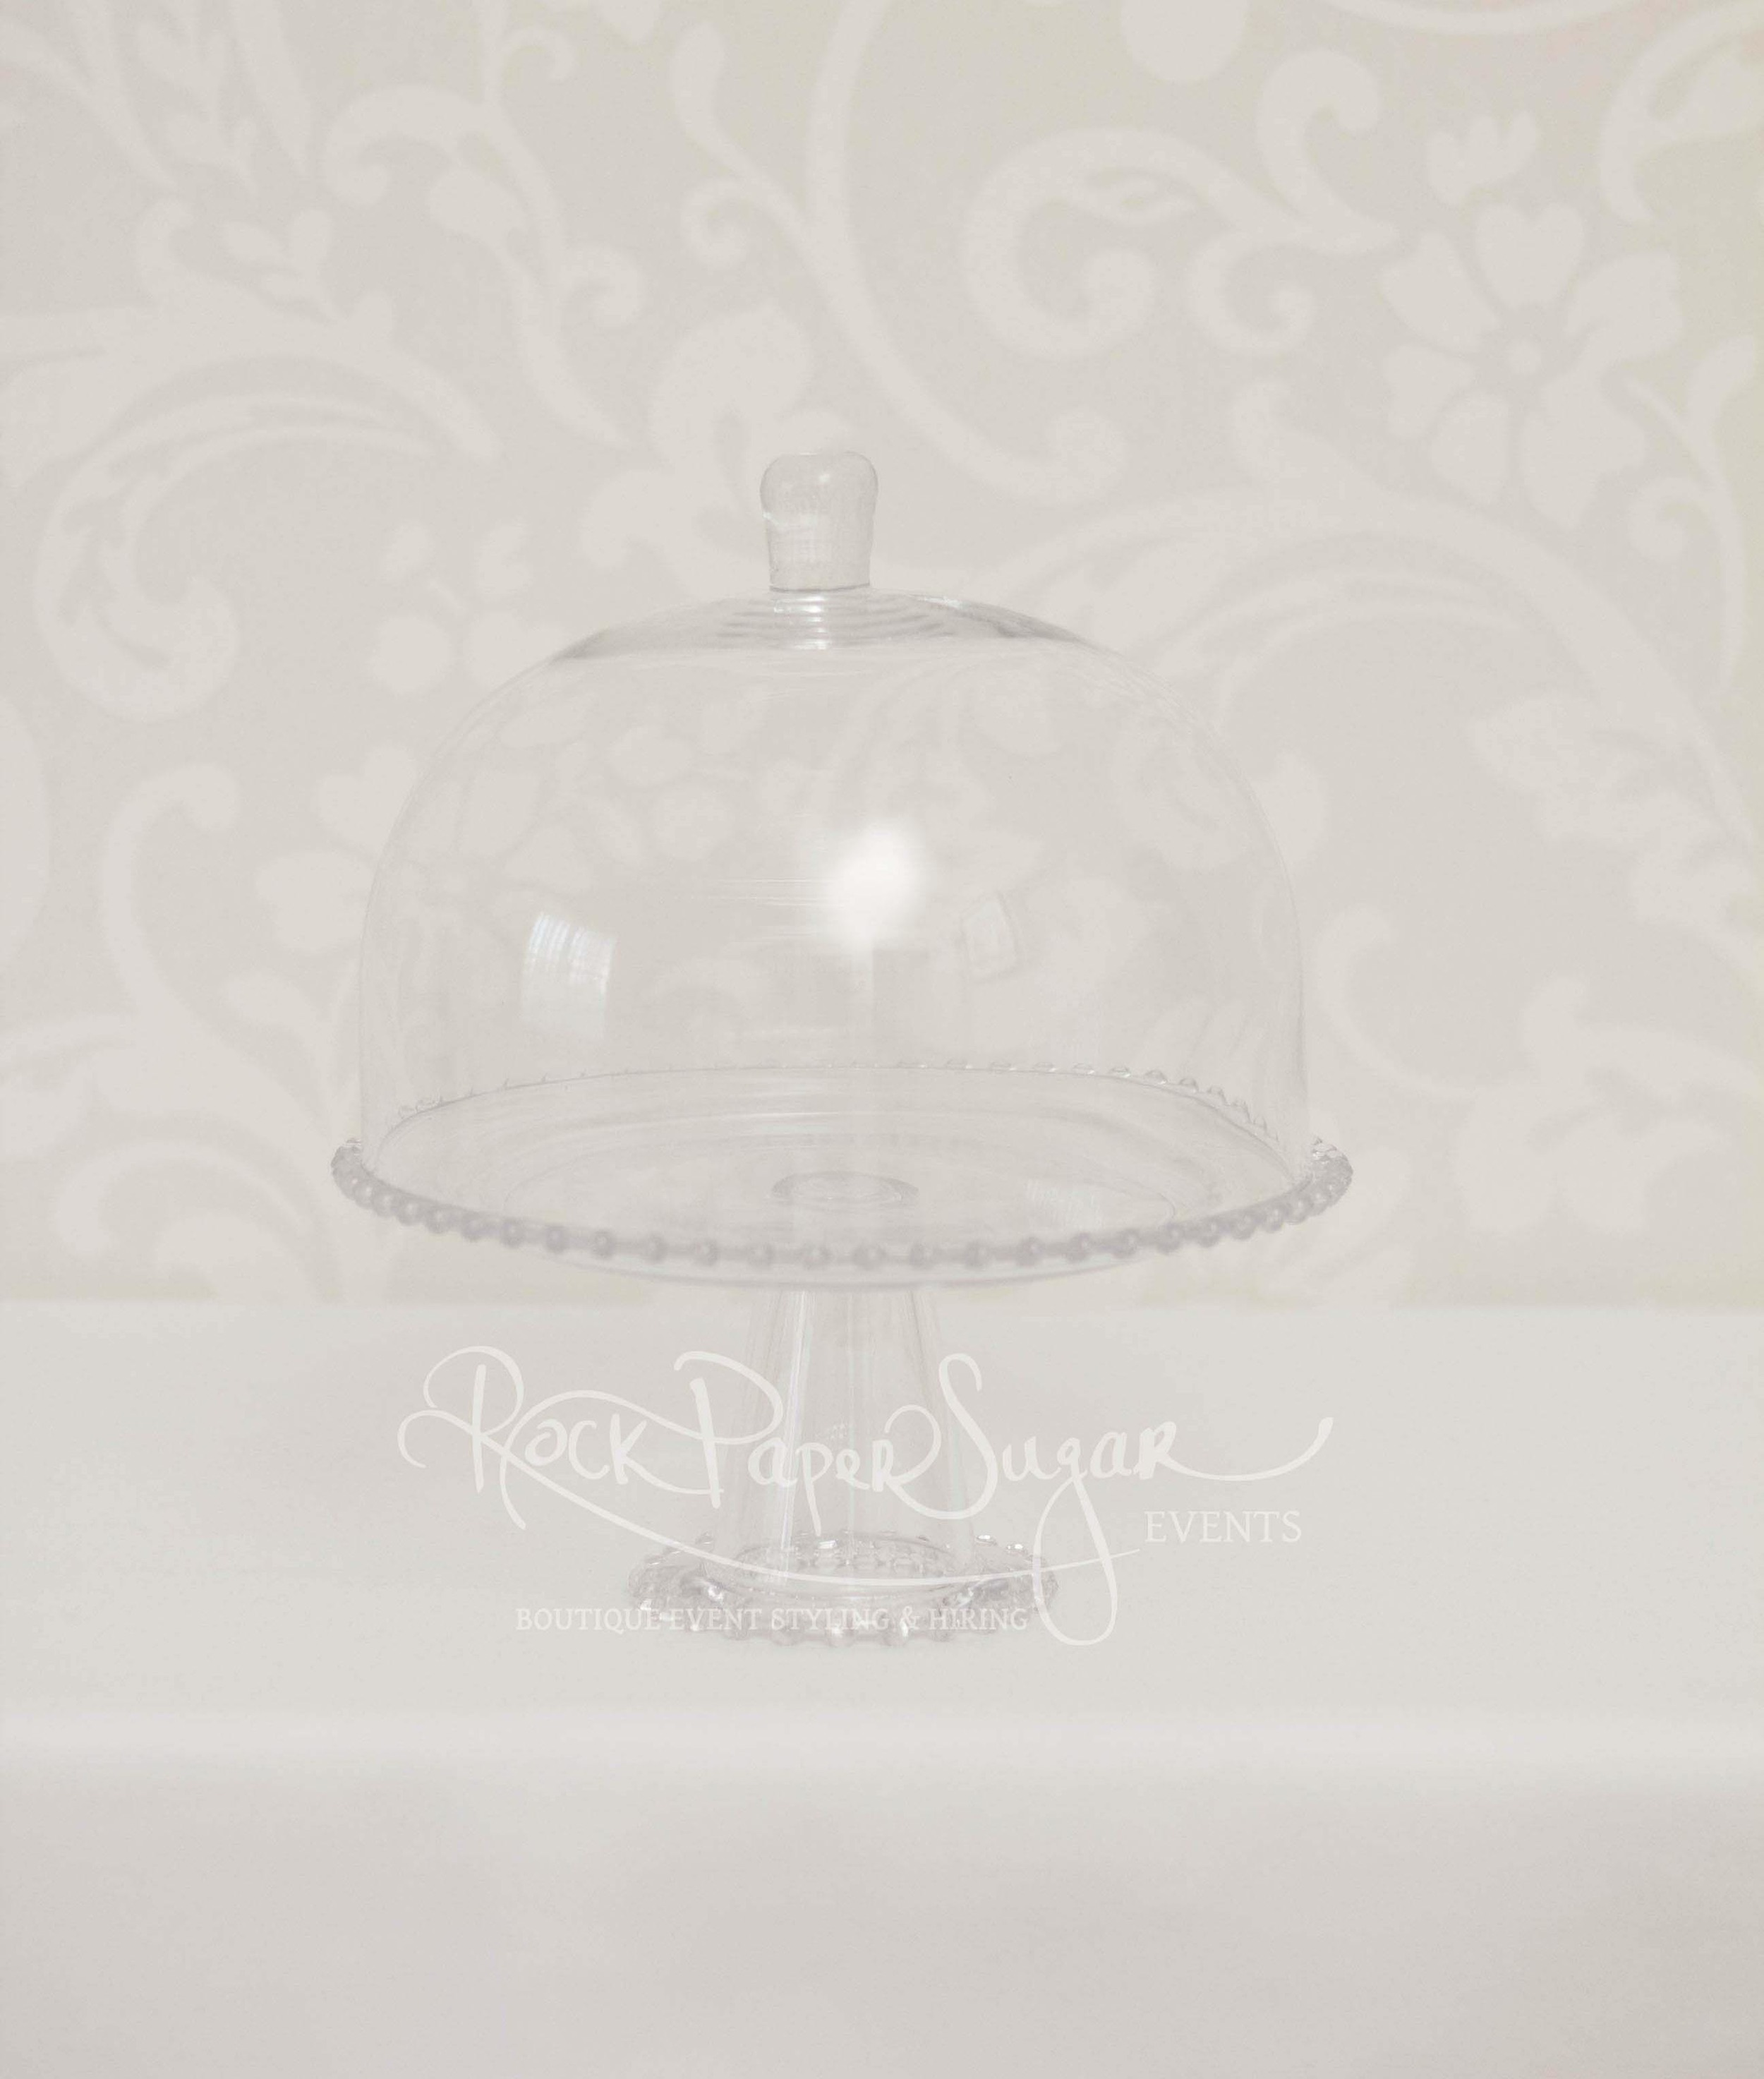 Rock Paper Sugar Events Cake Stands with Dome 005.jpg